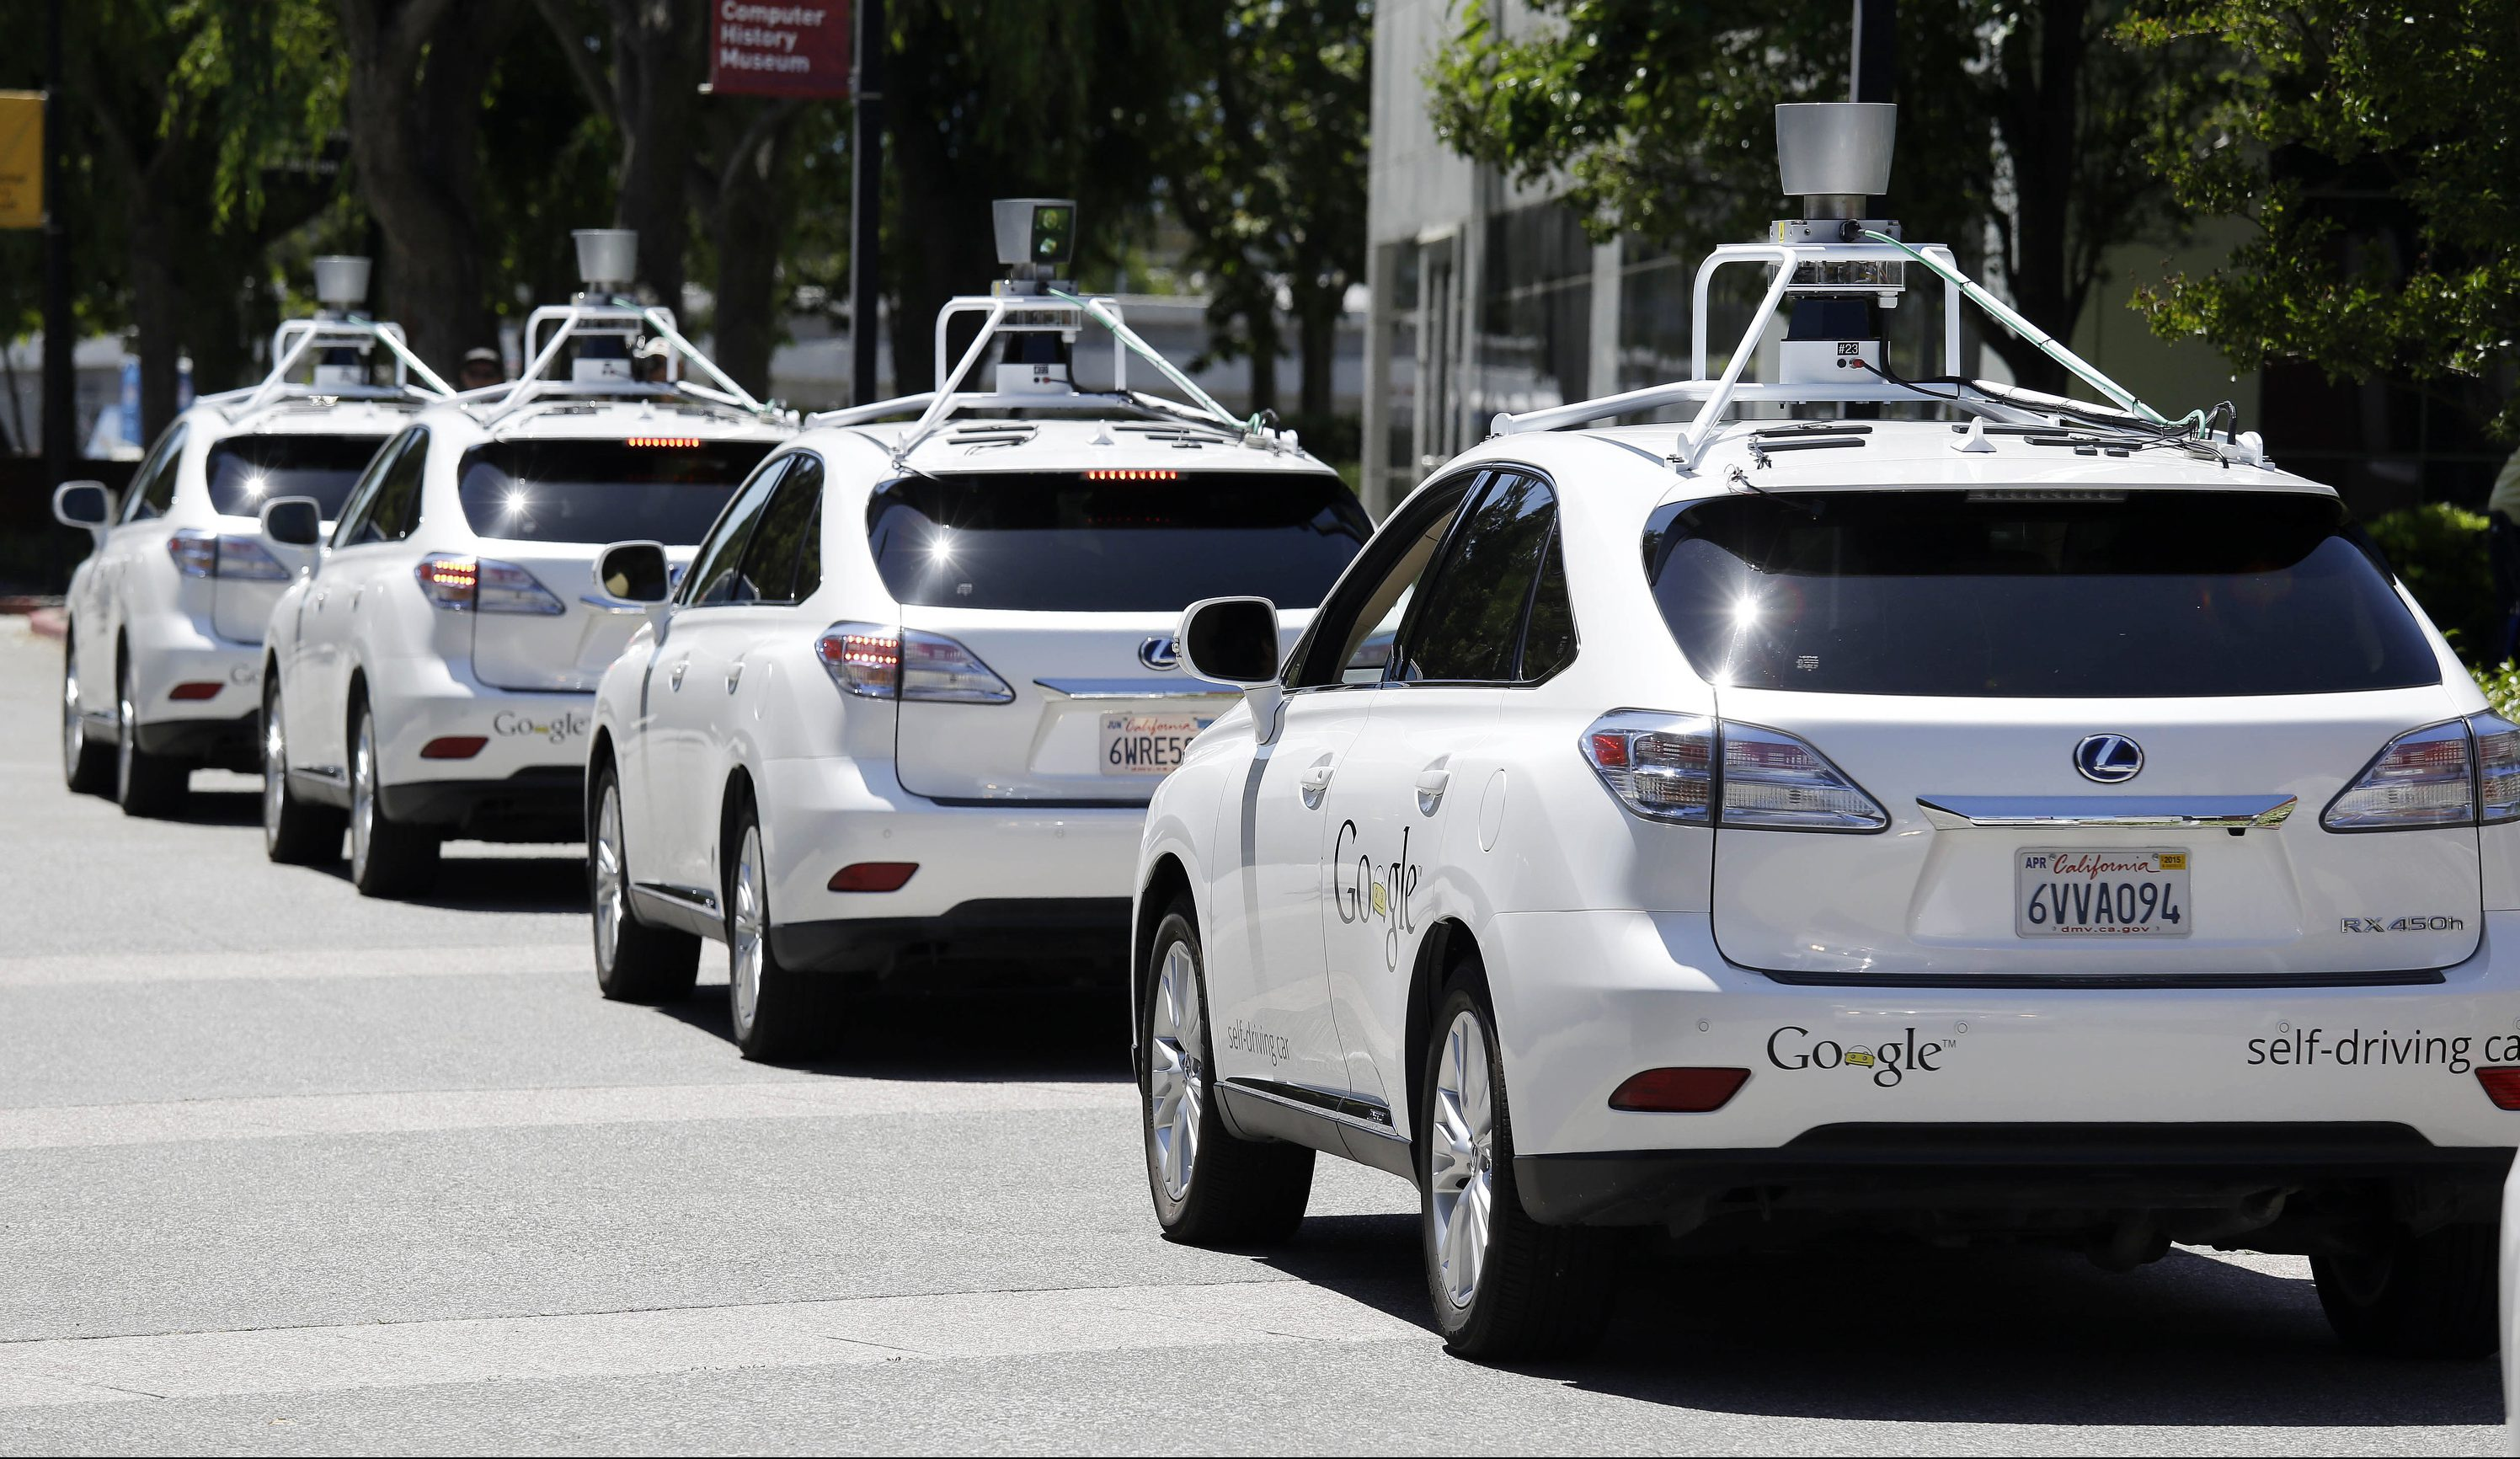 This May 13, 2014, file photo shows a row of Google self-driving Lexus cars at a Google event outside the Computer History Museum in Mountain View, Calif. California regulators release safety reports filed by 11 companies that have been testing self-driving car prototypes on public roads on Wednesday, Feb. 1, 2017.